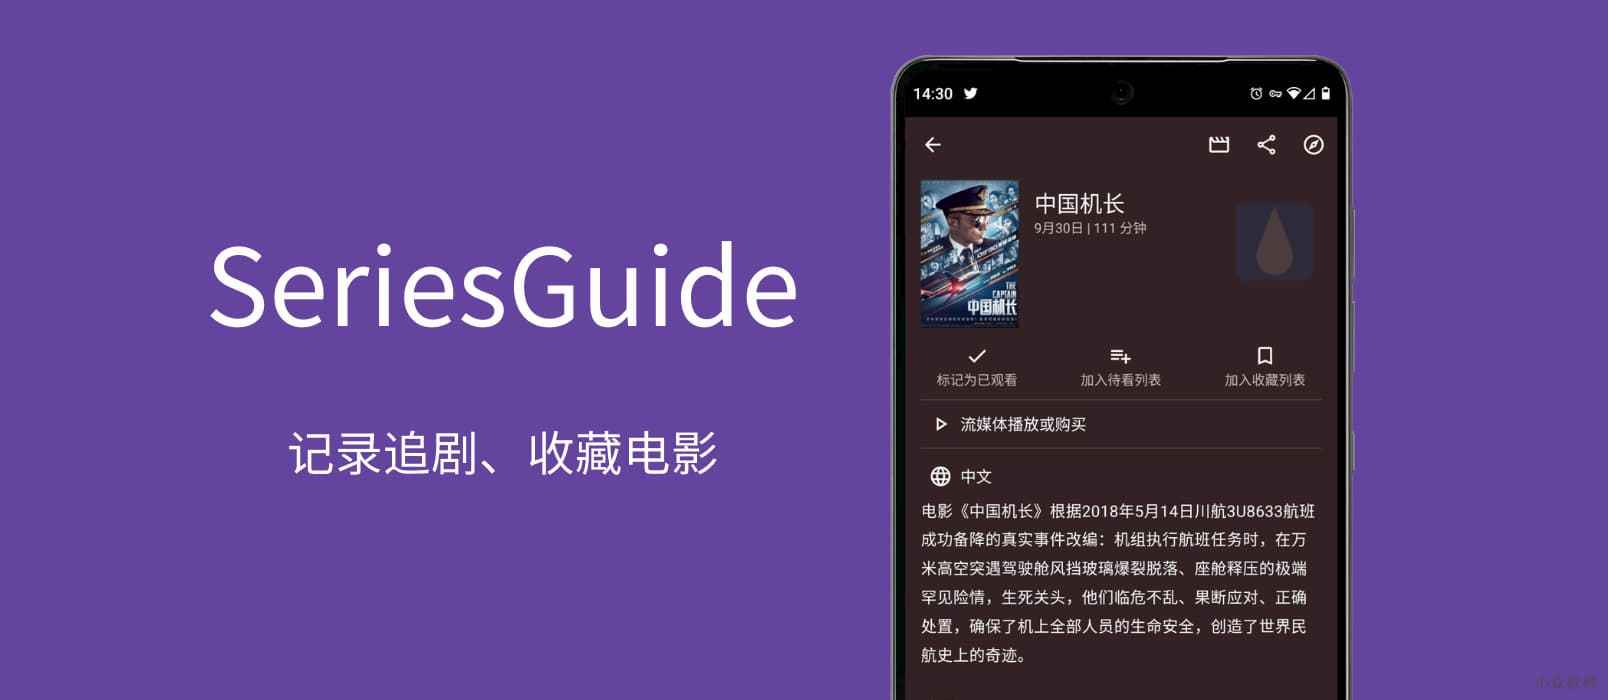 SeriesGuide - 收藏、記錄追劇進度、觀看過的電影[Android] 1